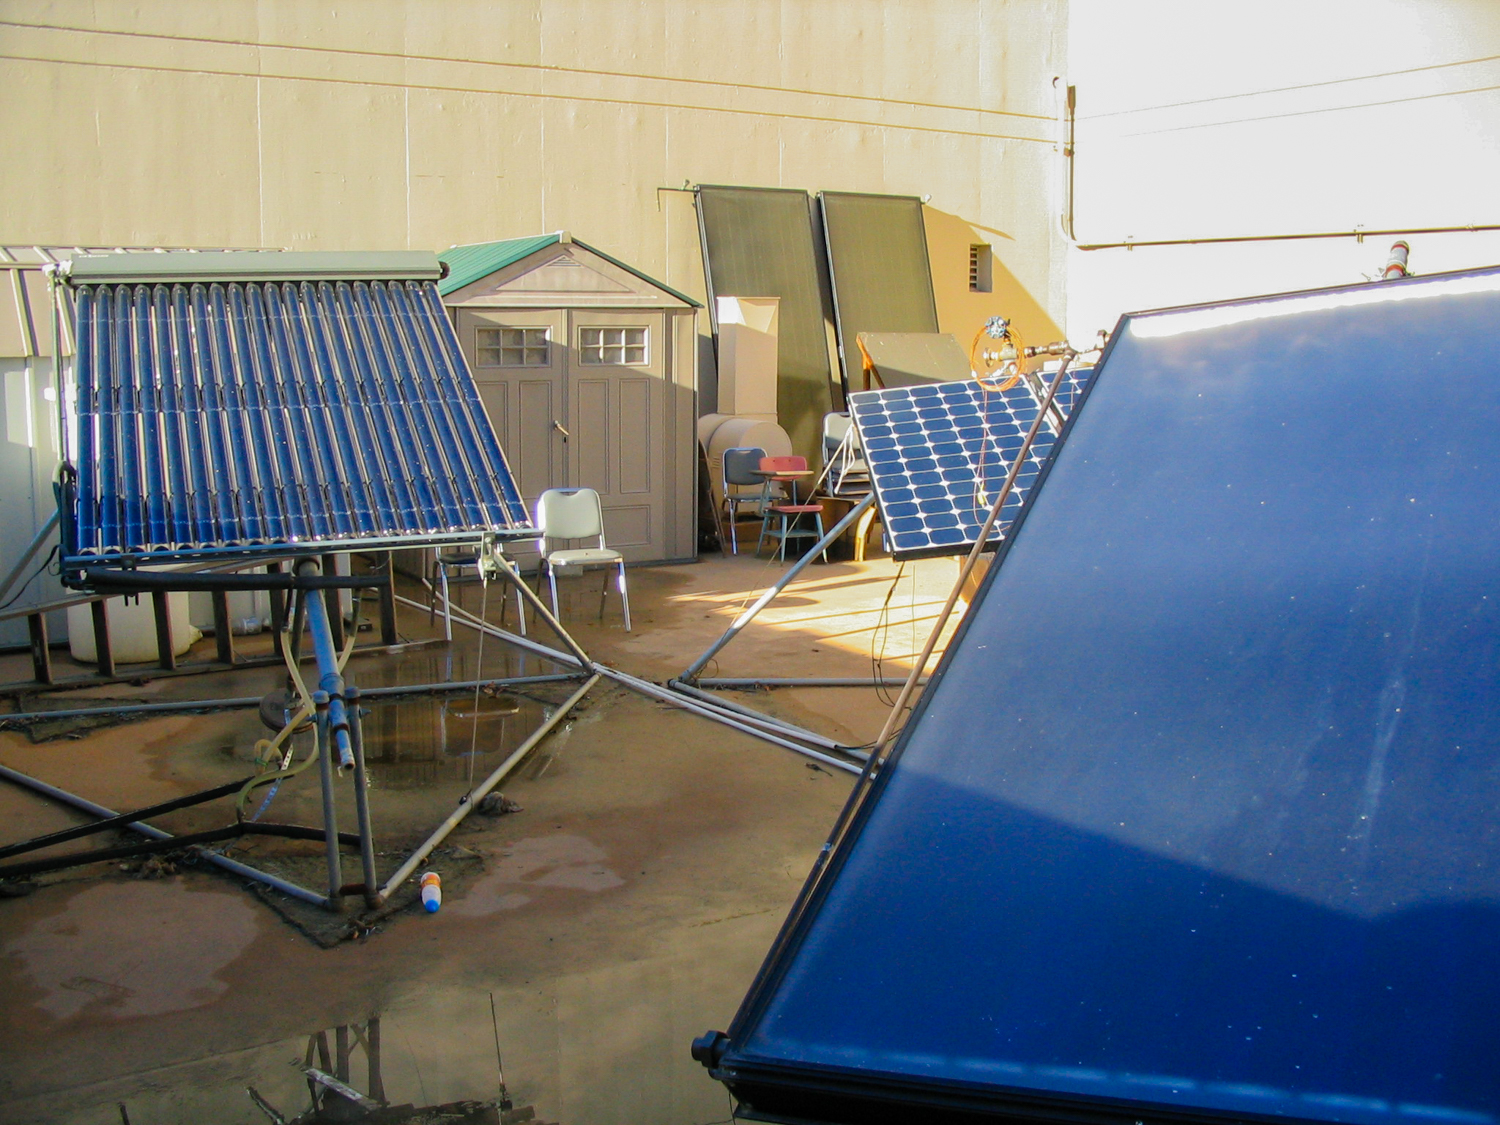 Collection of solar energy equipment on the roof of the SJSU engineering building